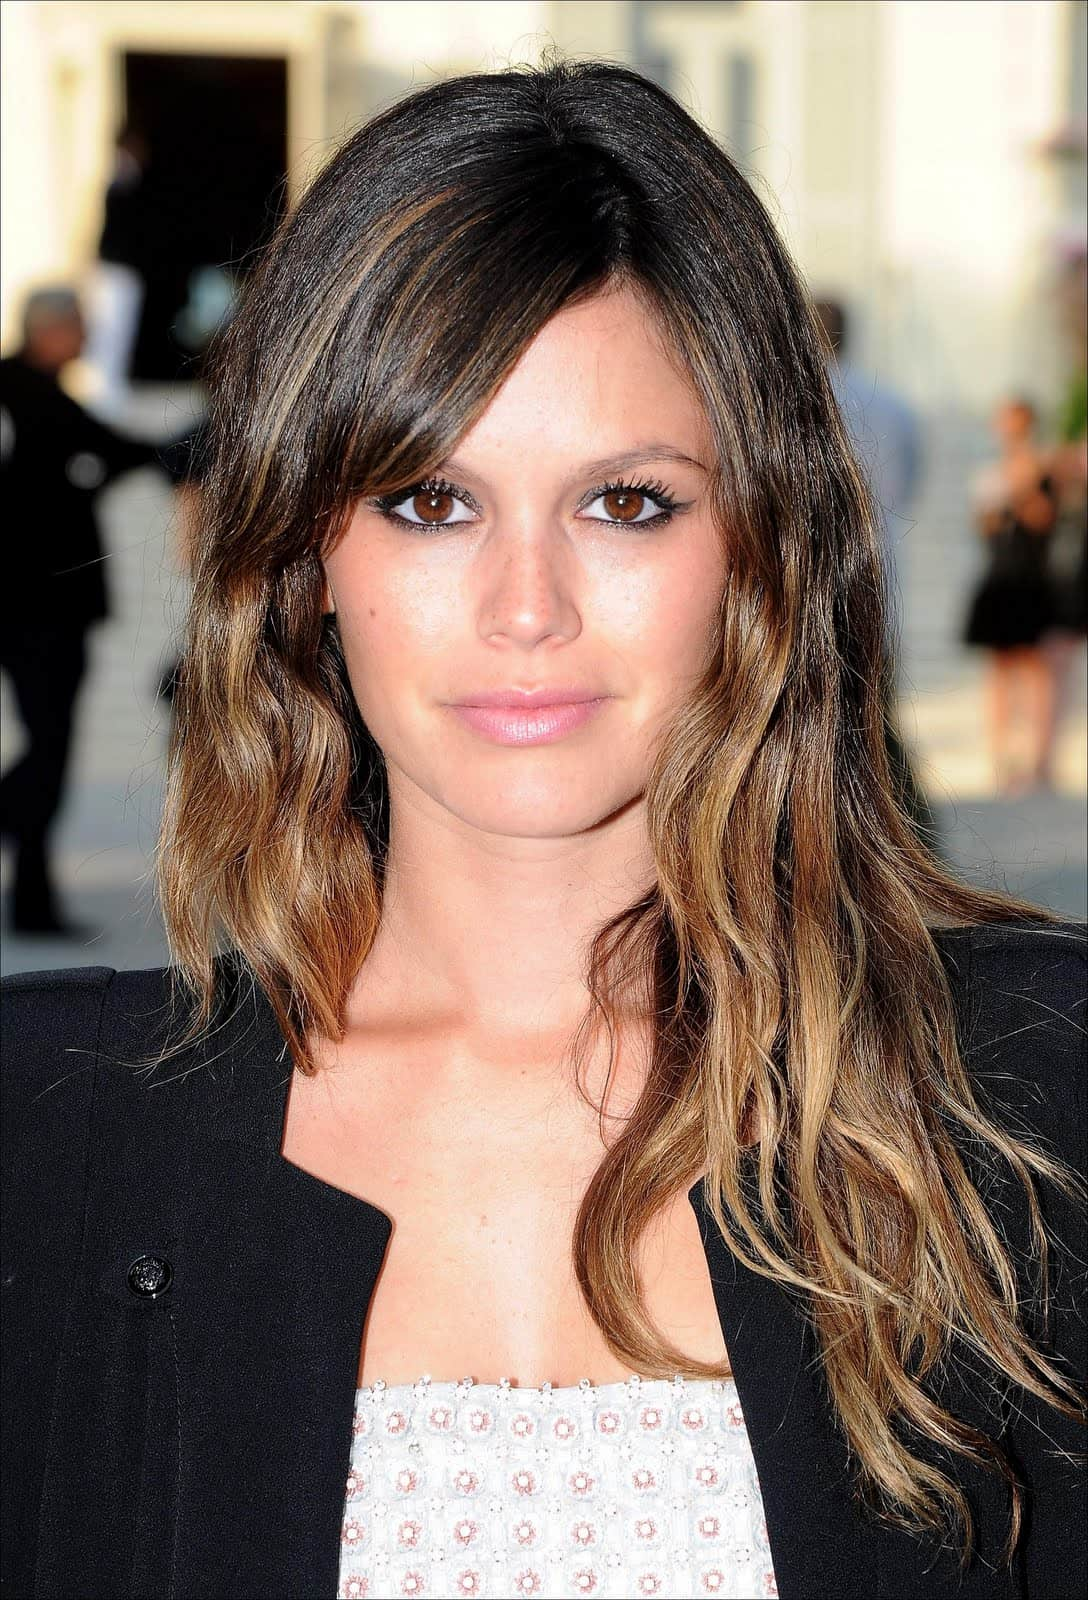 rachel bilson dip dyed What Are The Biggest Hair Trends For 2013? Get Some Color Inspiration...